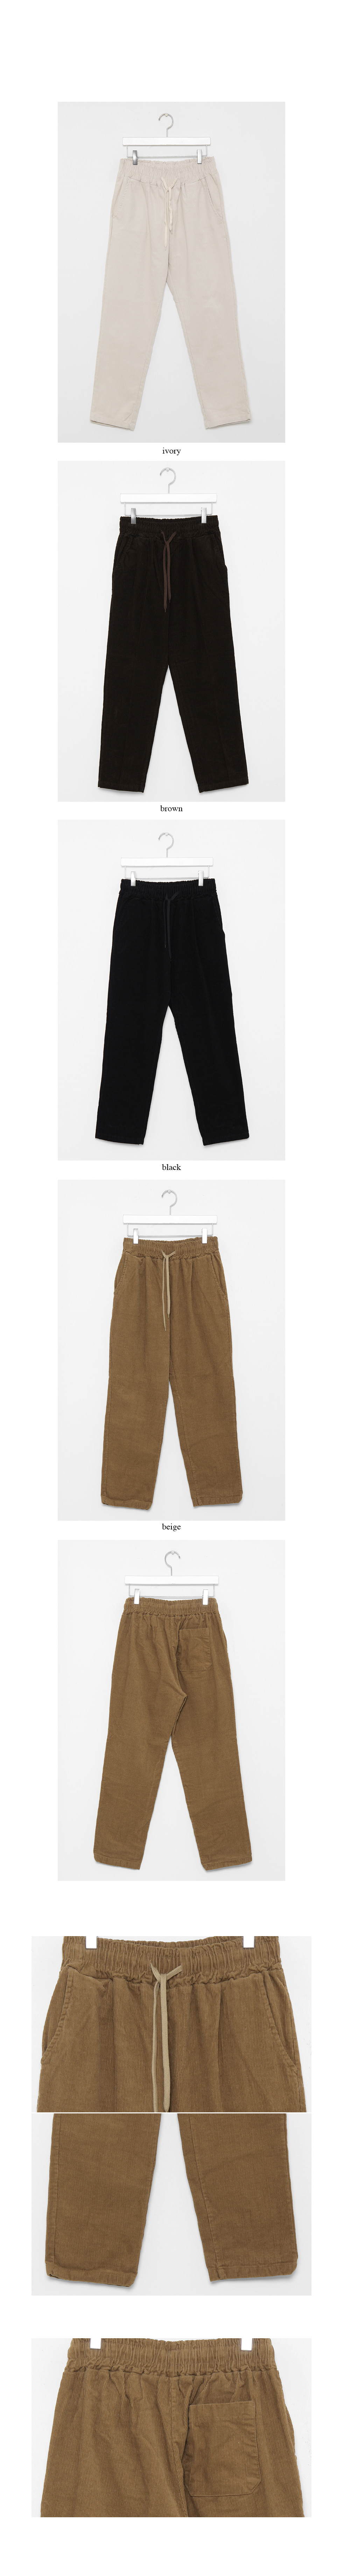 washed casual pants